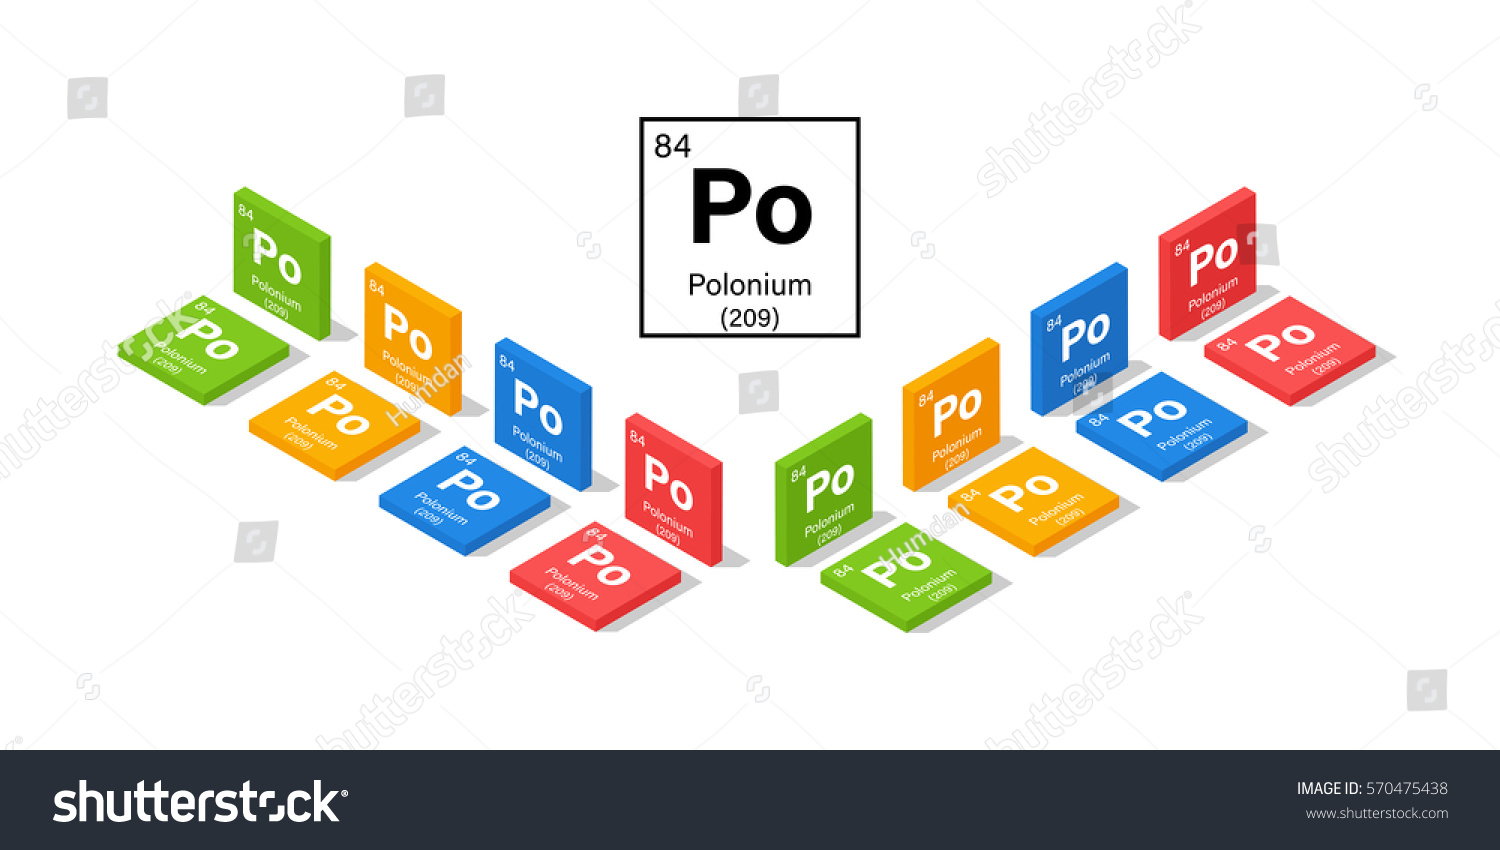 Pete mckee periodic table gallery periodic table images po element periodic table choice image periodic table images pete mckee periodic table images periodic table gamestrikefo Gallery